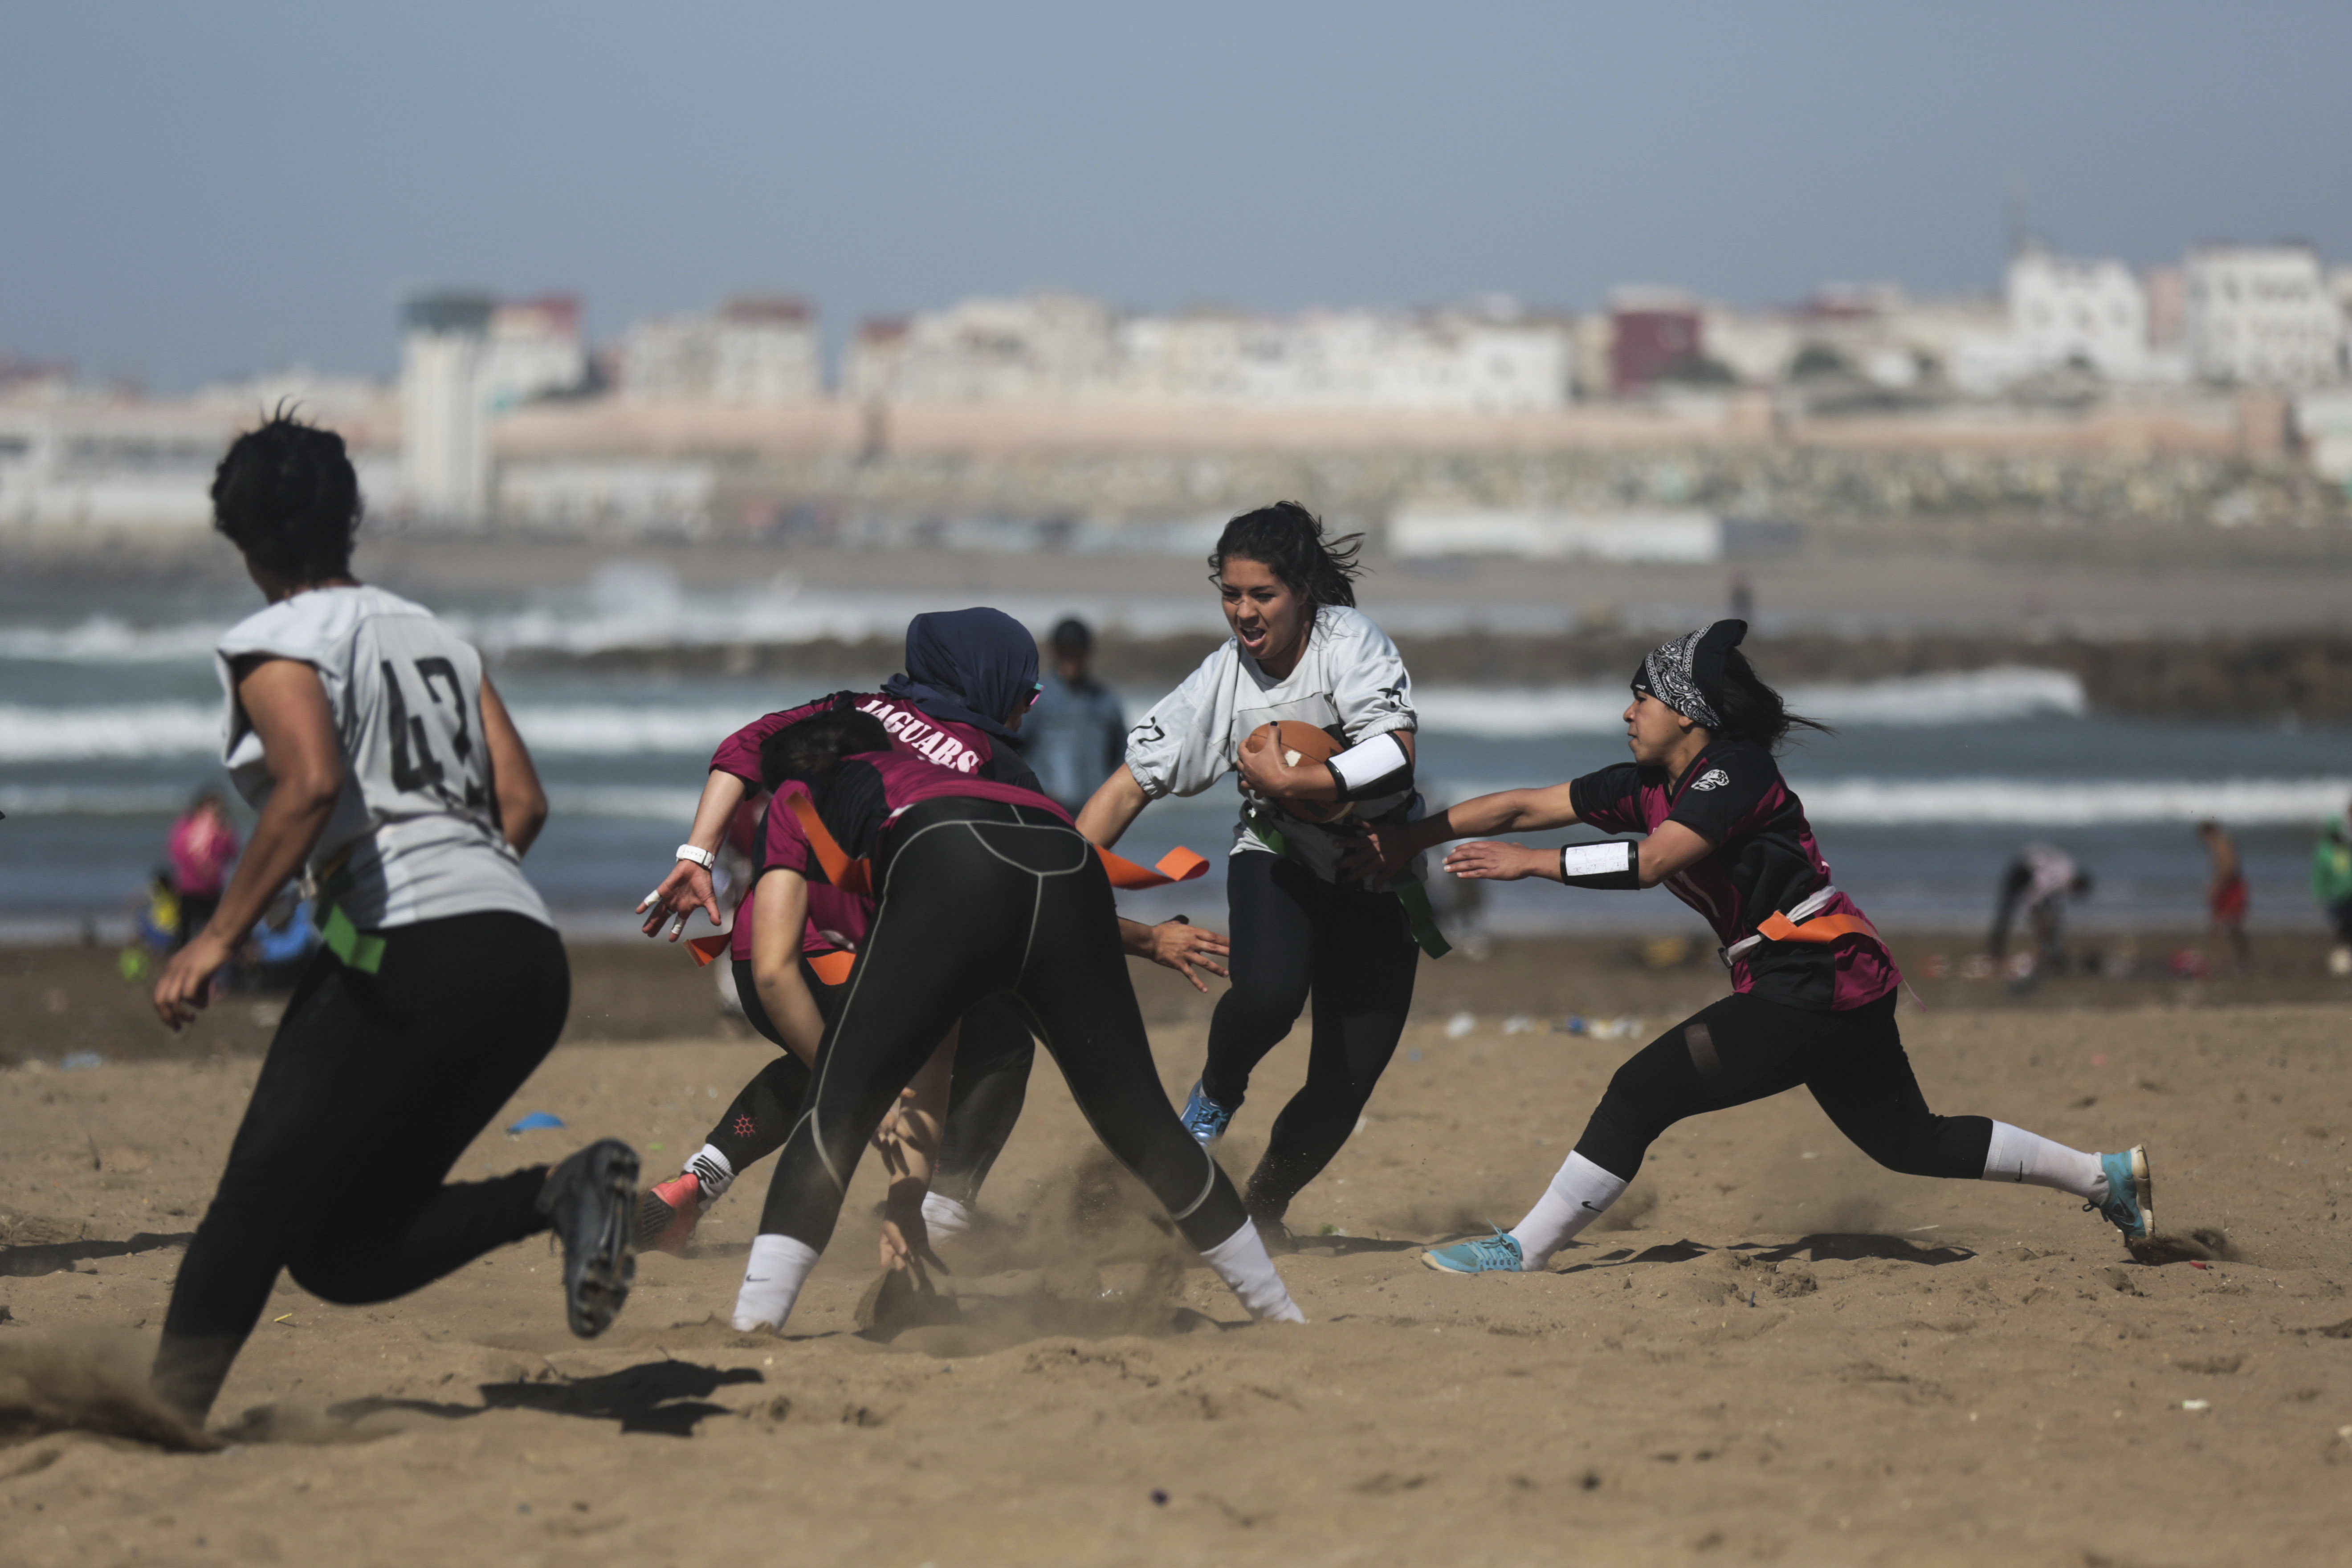 "<div class=""meta image-caption""><div class=""origin-logo origin-image ap""><span>AP</span></div><span class=""caption-text"">Girls play flag football on a beach in Rabat, Morocco (AP)</span></div>"